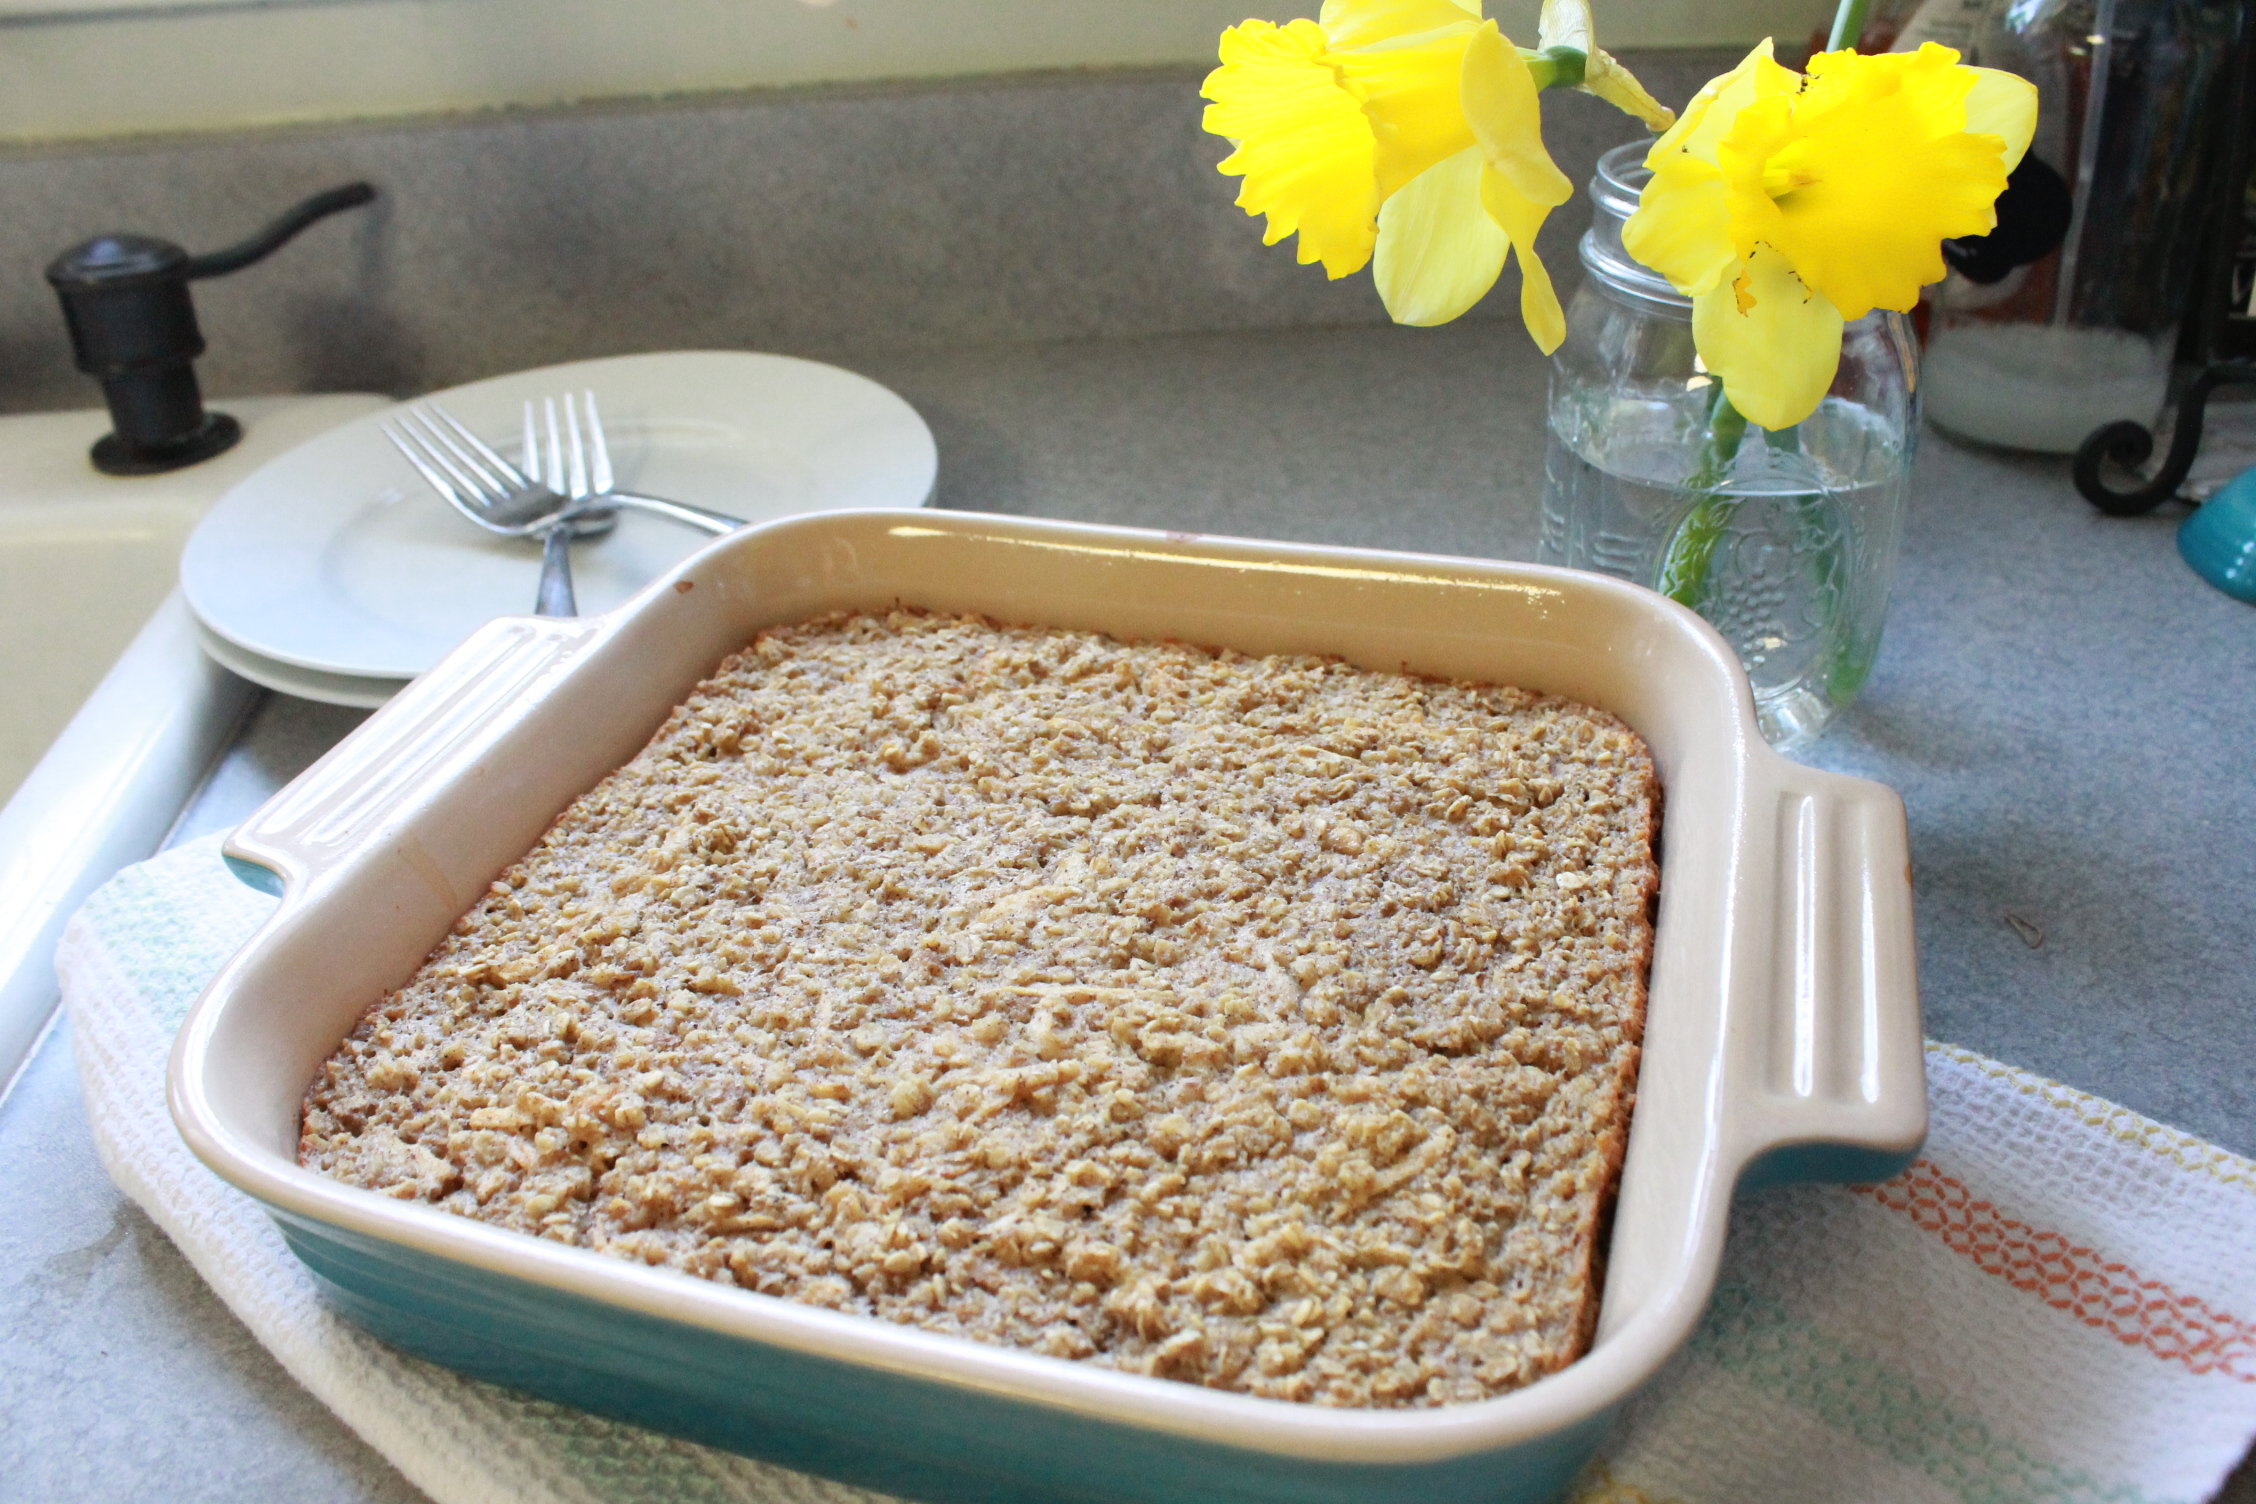 Lifestyle Medical Center Recipe Highlight: Baked Apple And Nut Oatmeal